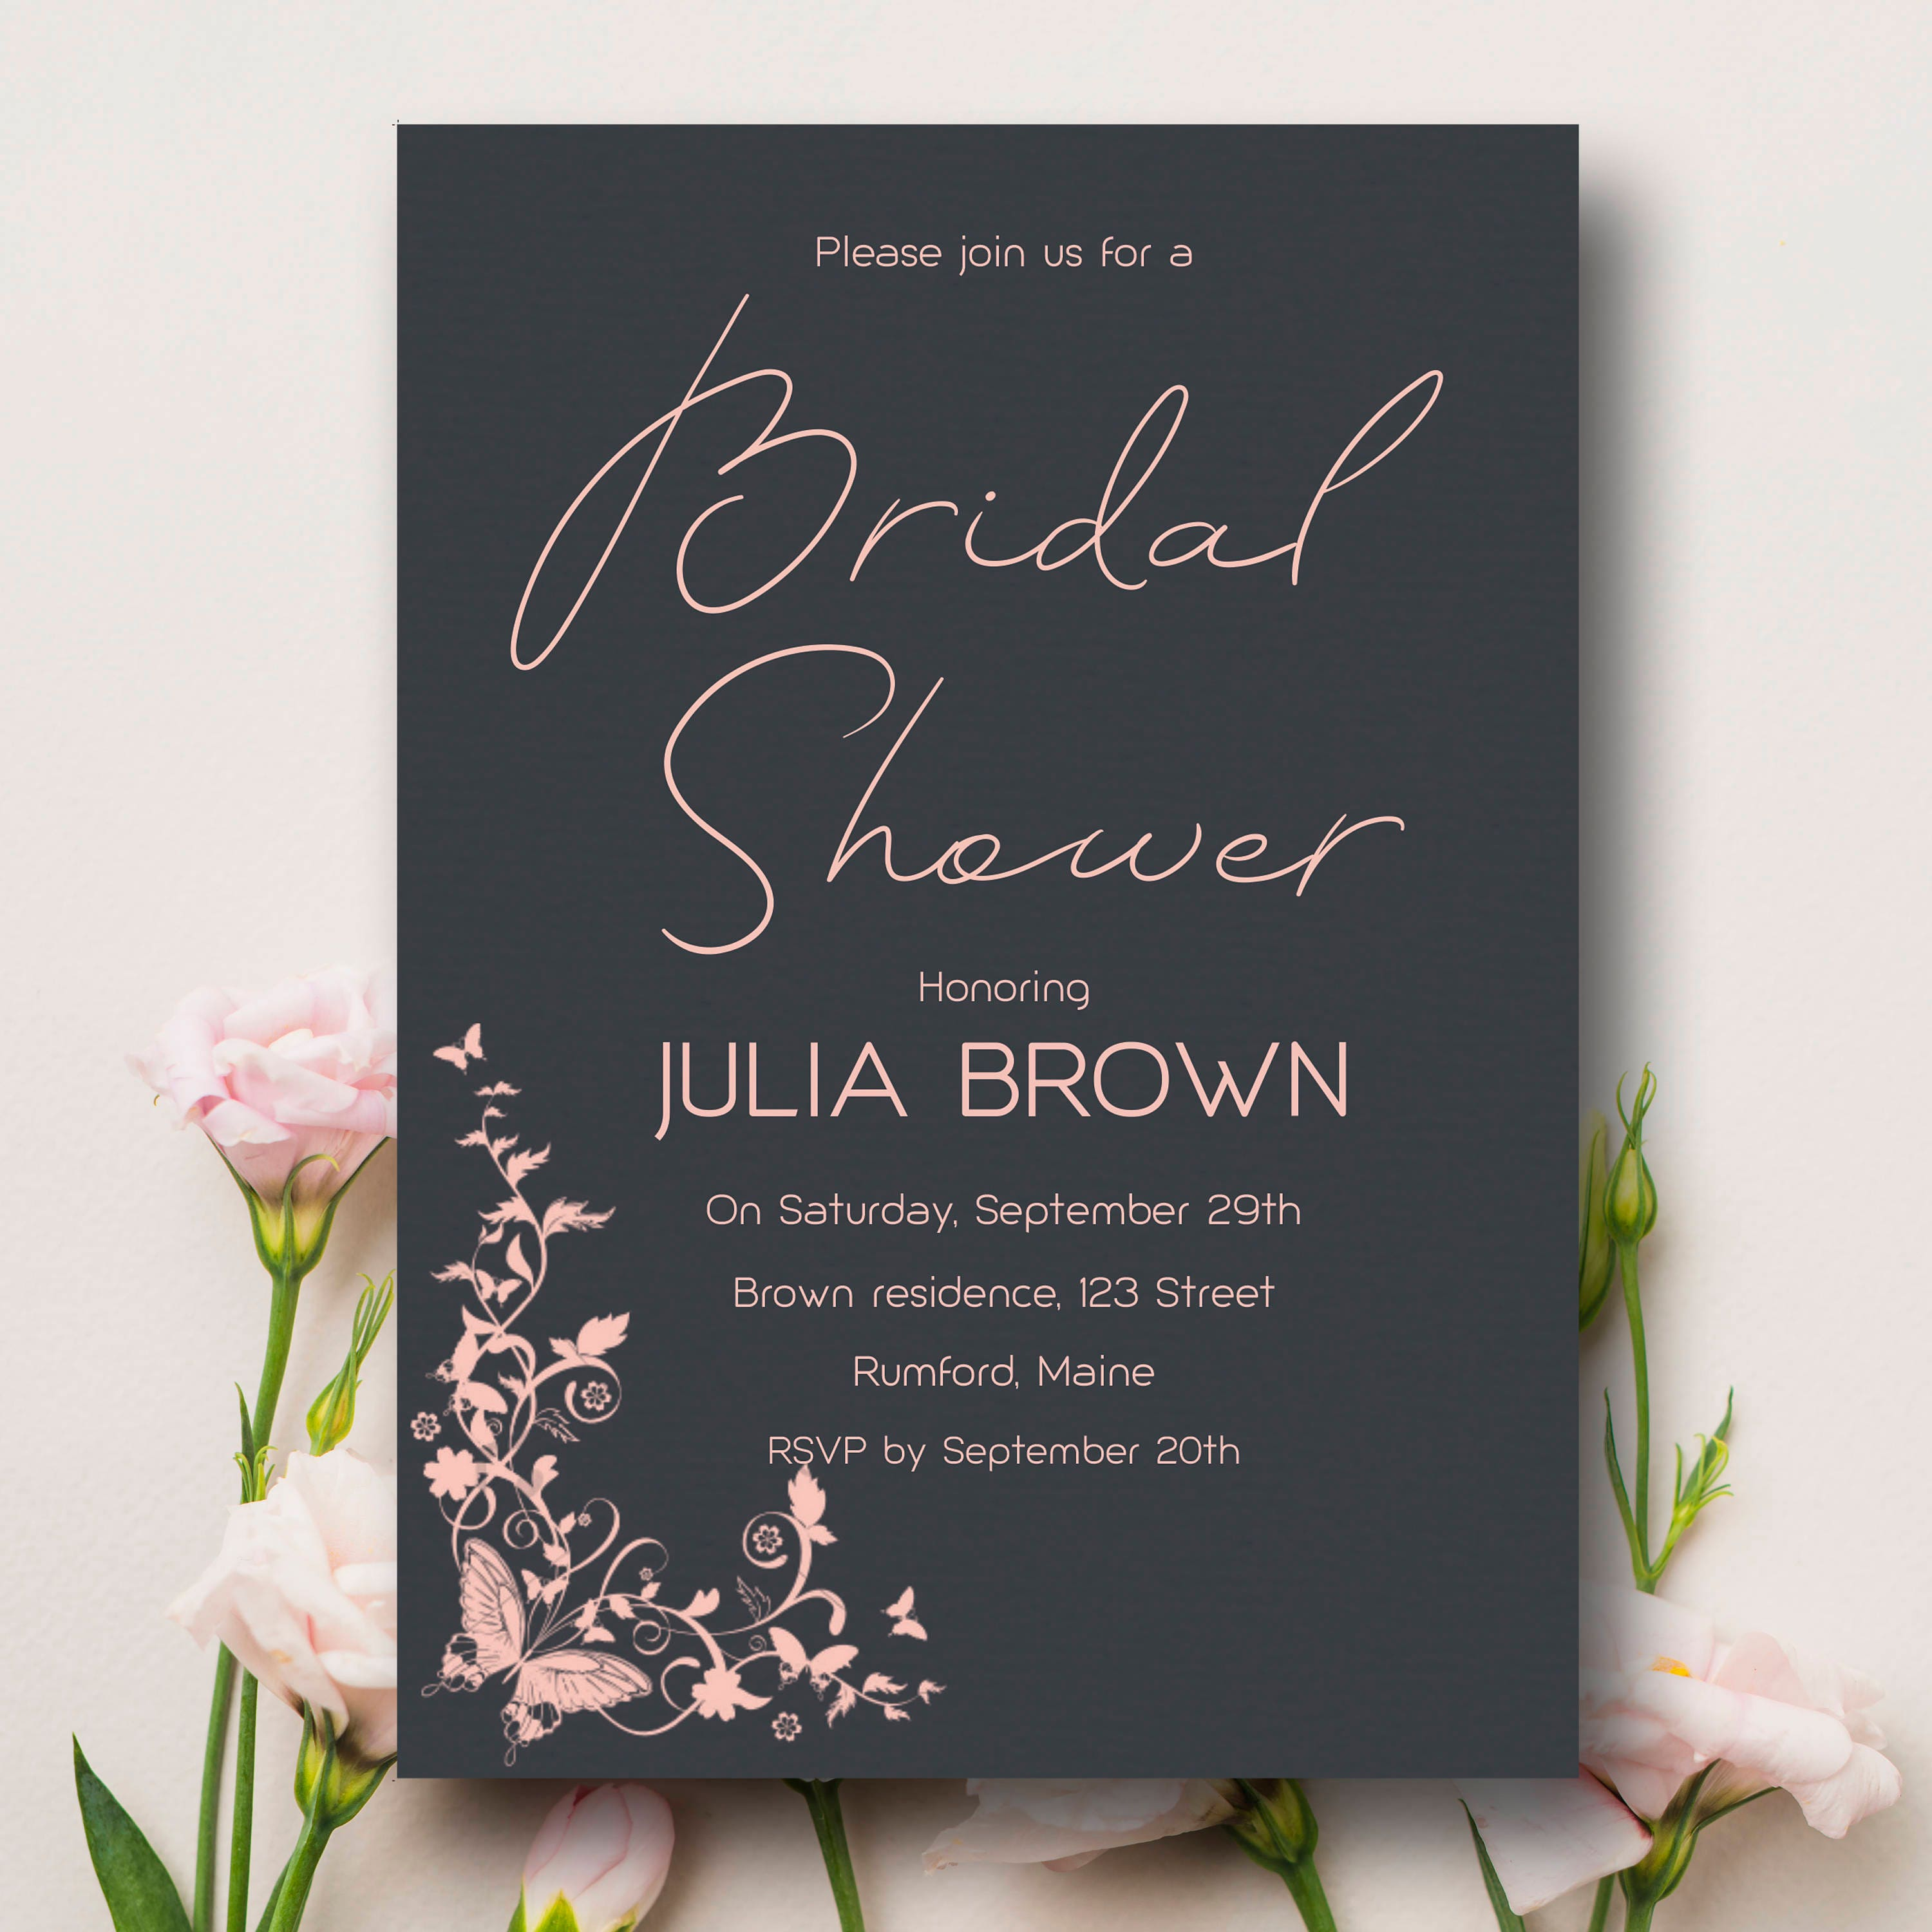 photograph regarding Printable Bridal Shower Card referred to as Gray and Purple Bridal Shower Invitation, Printable Bridal Shower card, Gray and Purple Bridal Shower Invite, Editable Bridal Shower Template